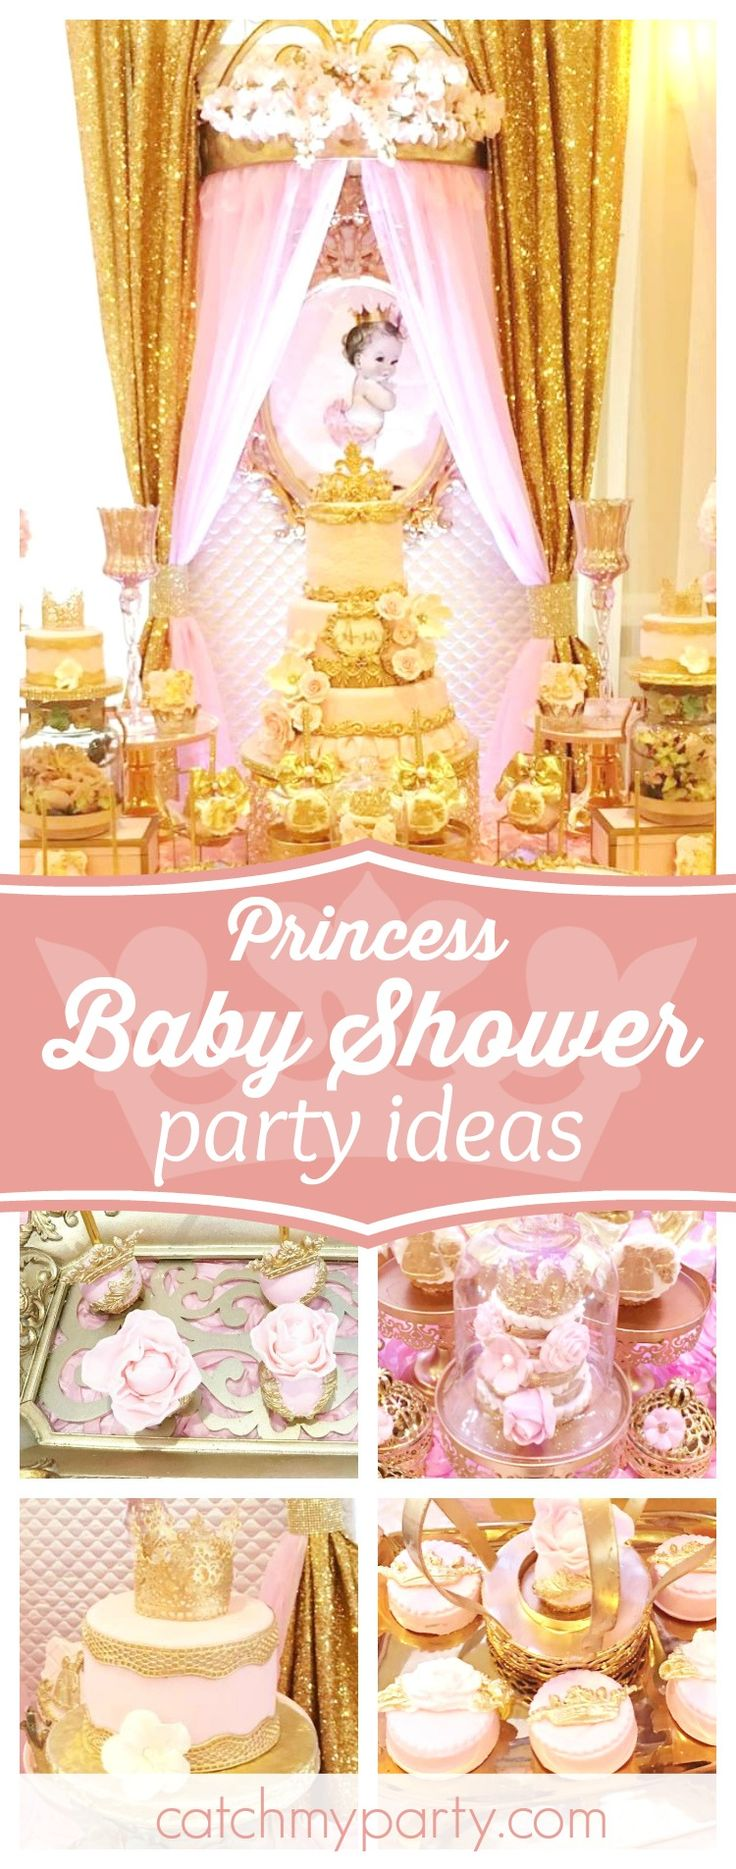 Check out this wonderful Princess Baby Shower. The dessert table is incredible!! See more party ideas and share yours at CatchMyParty.com